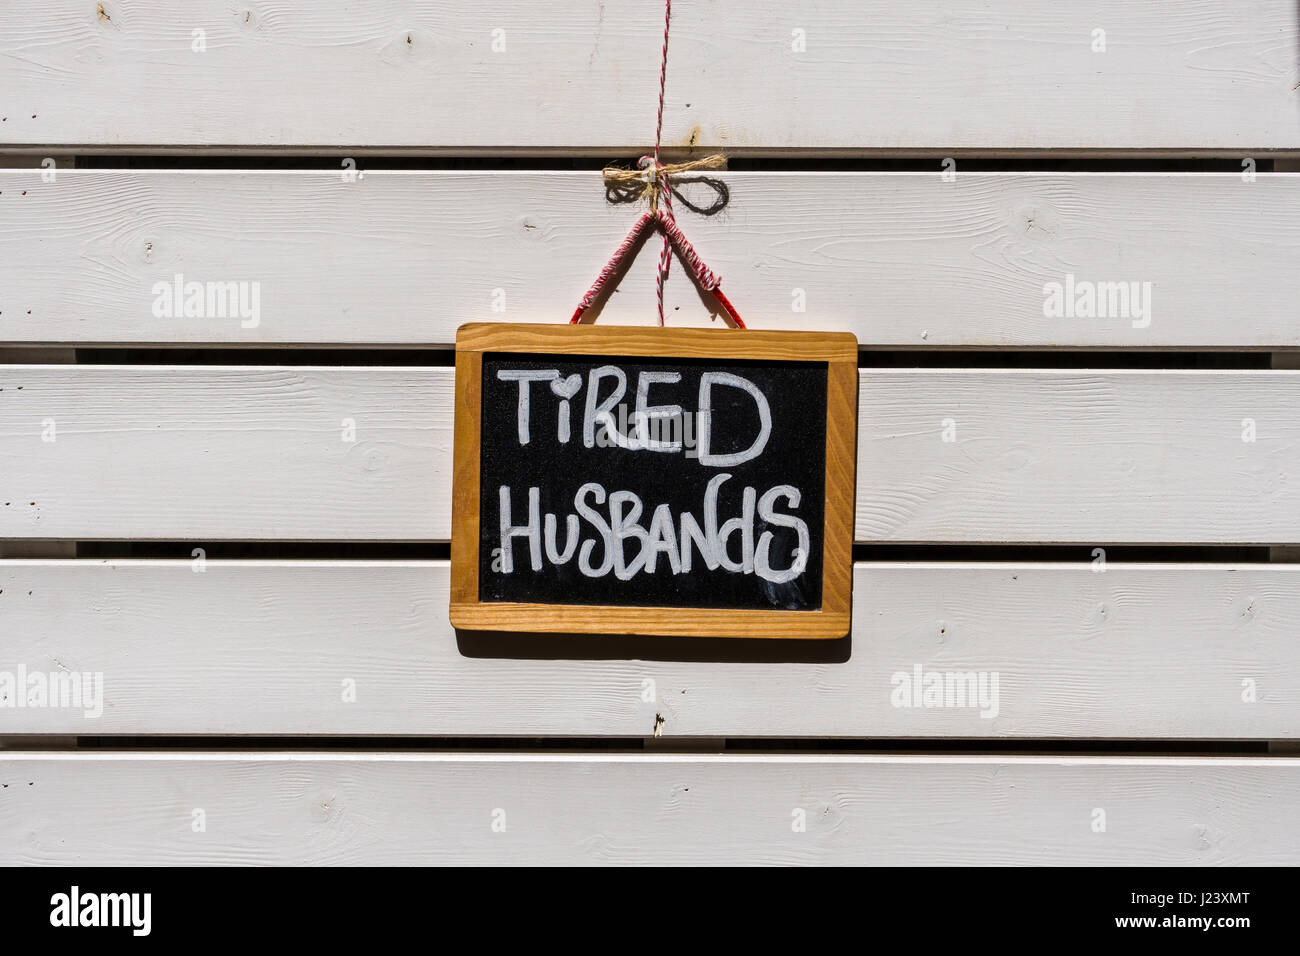 The sign Tired Husbands is inviting to sit on a chair - Stock Image